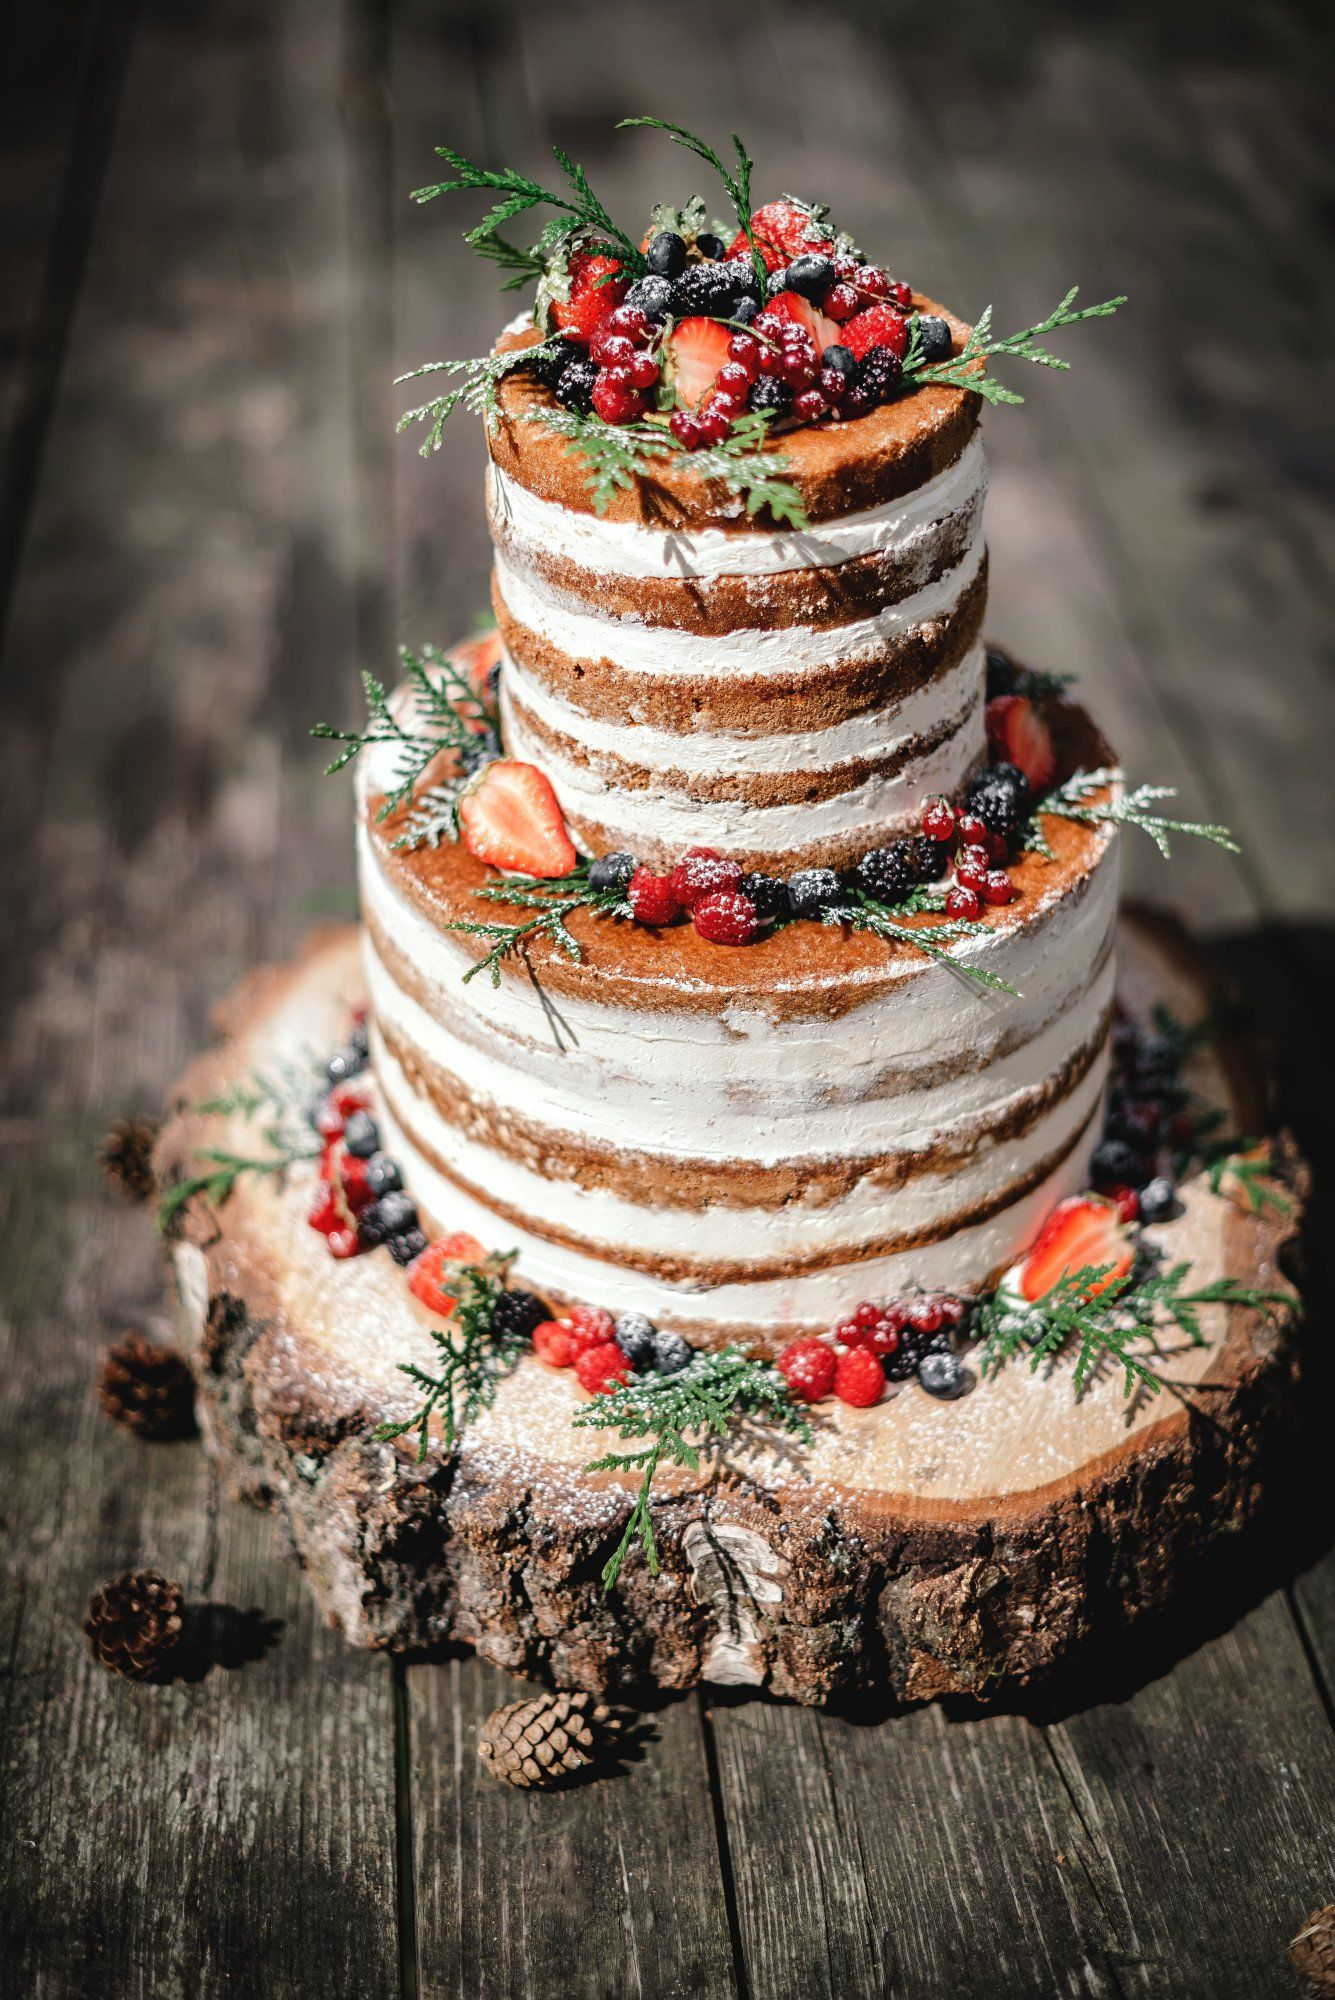 Something Sweet: 10 Designs for Rustic Wedding Cakes Too Pretty to Eat